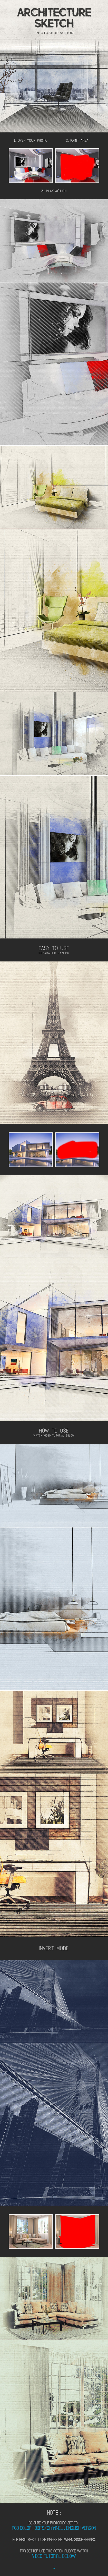 Architecture Sketch - Photoshop Action - Photo Effects Actions